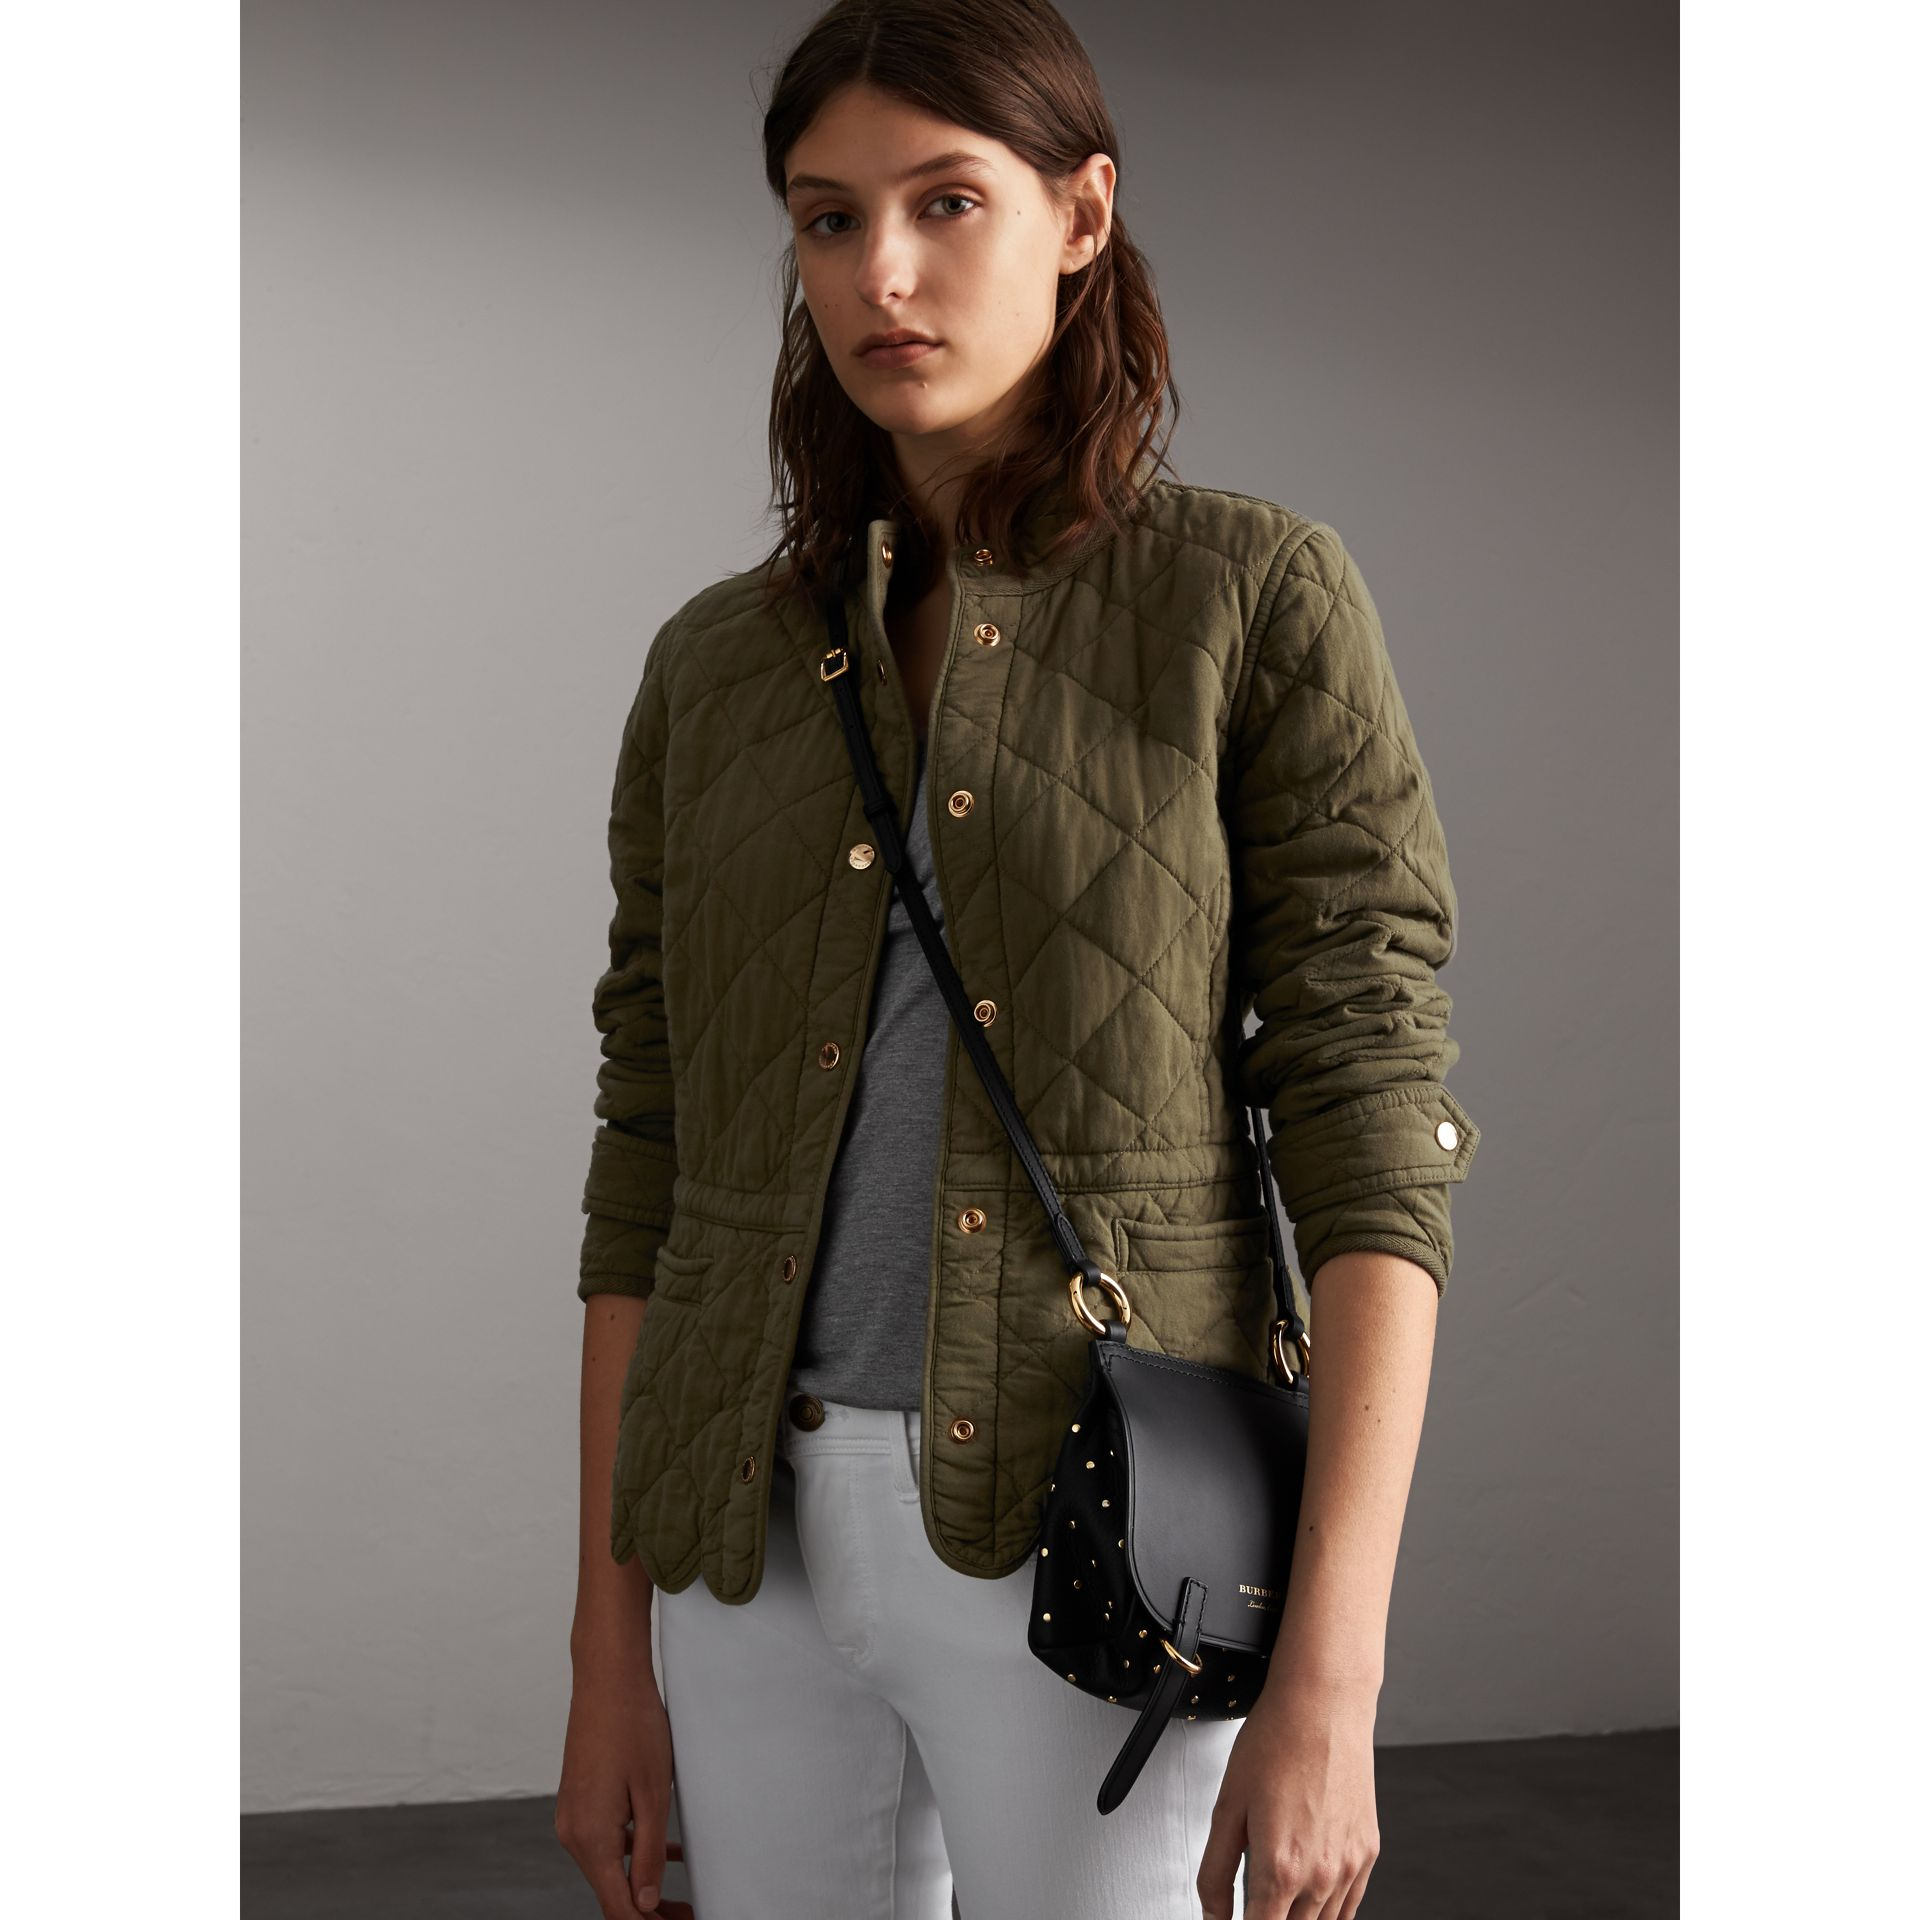 Scalloped Diamond Quilted Cotton Jacket in Olive - Women | Burberry - gallery image 1